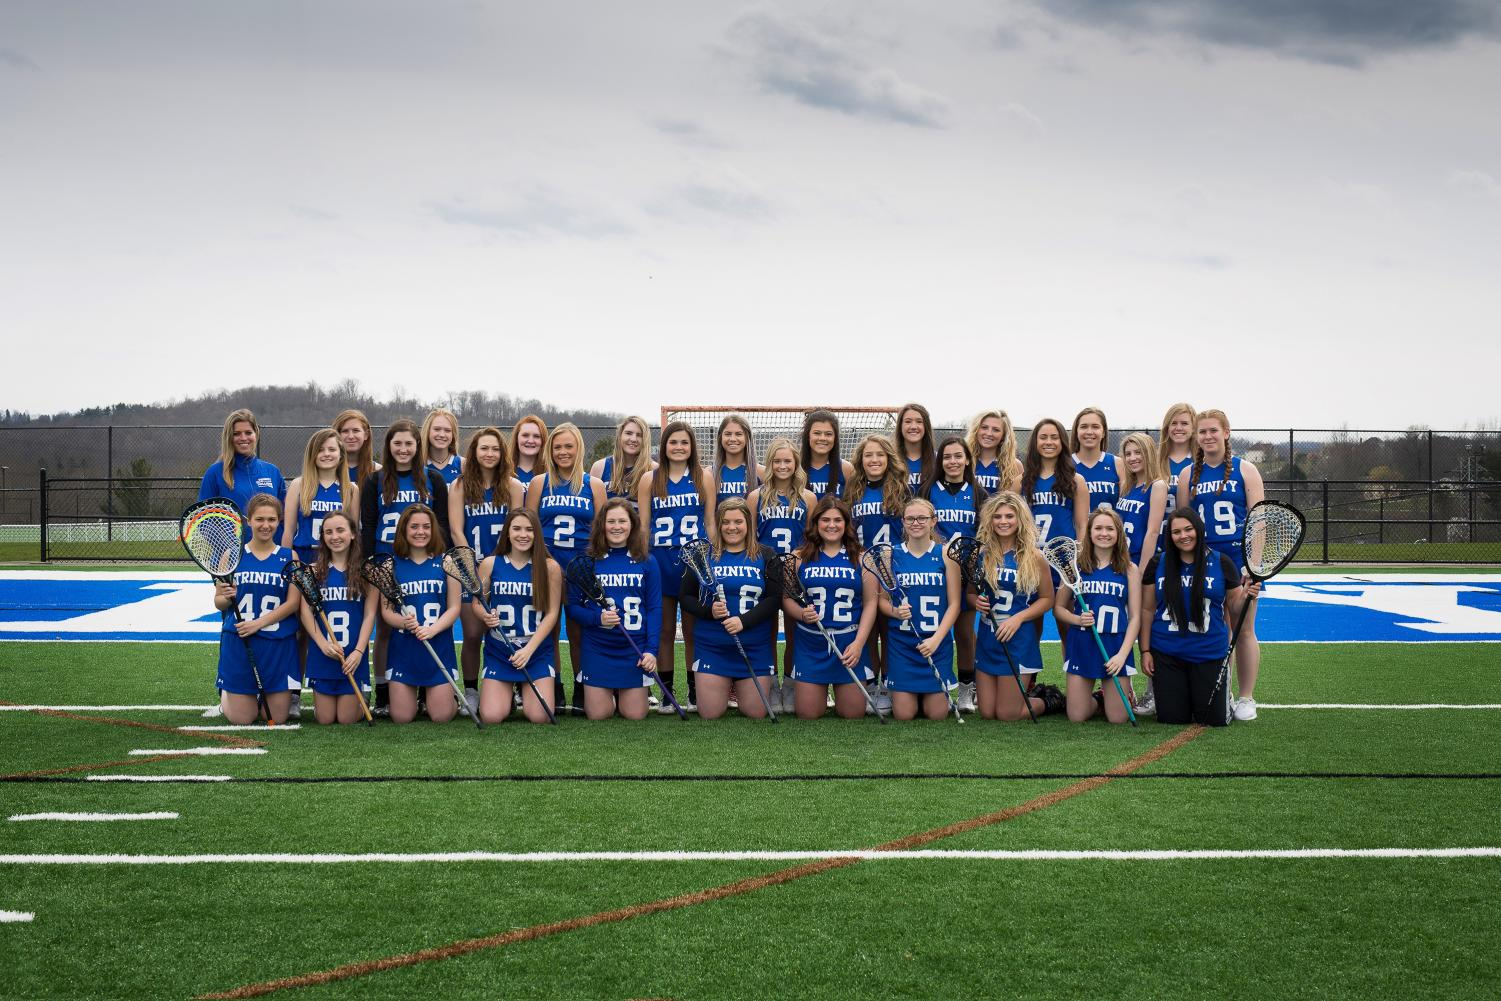 The girls lacrosse team, despite losing a lot of seniors, looks to make it to the playoffs this season.